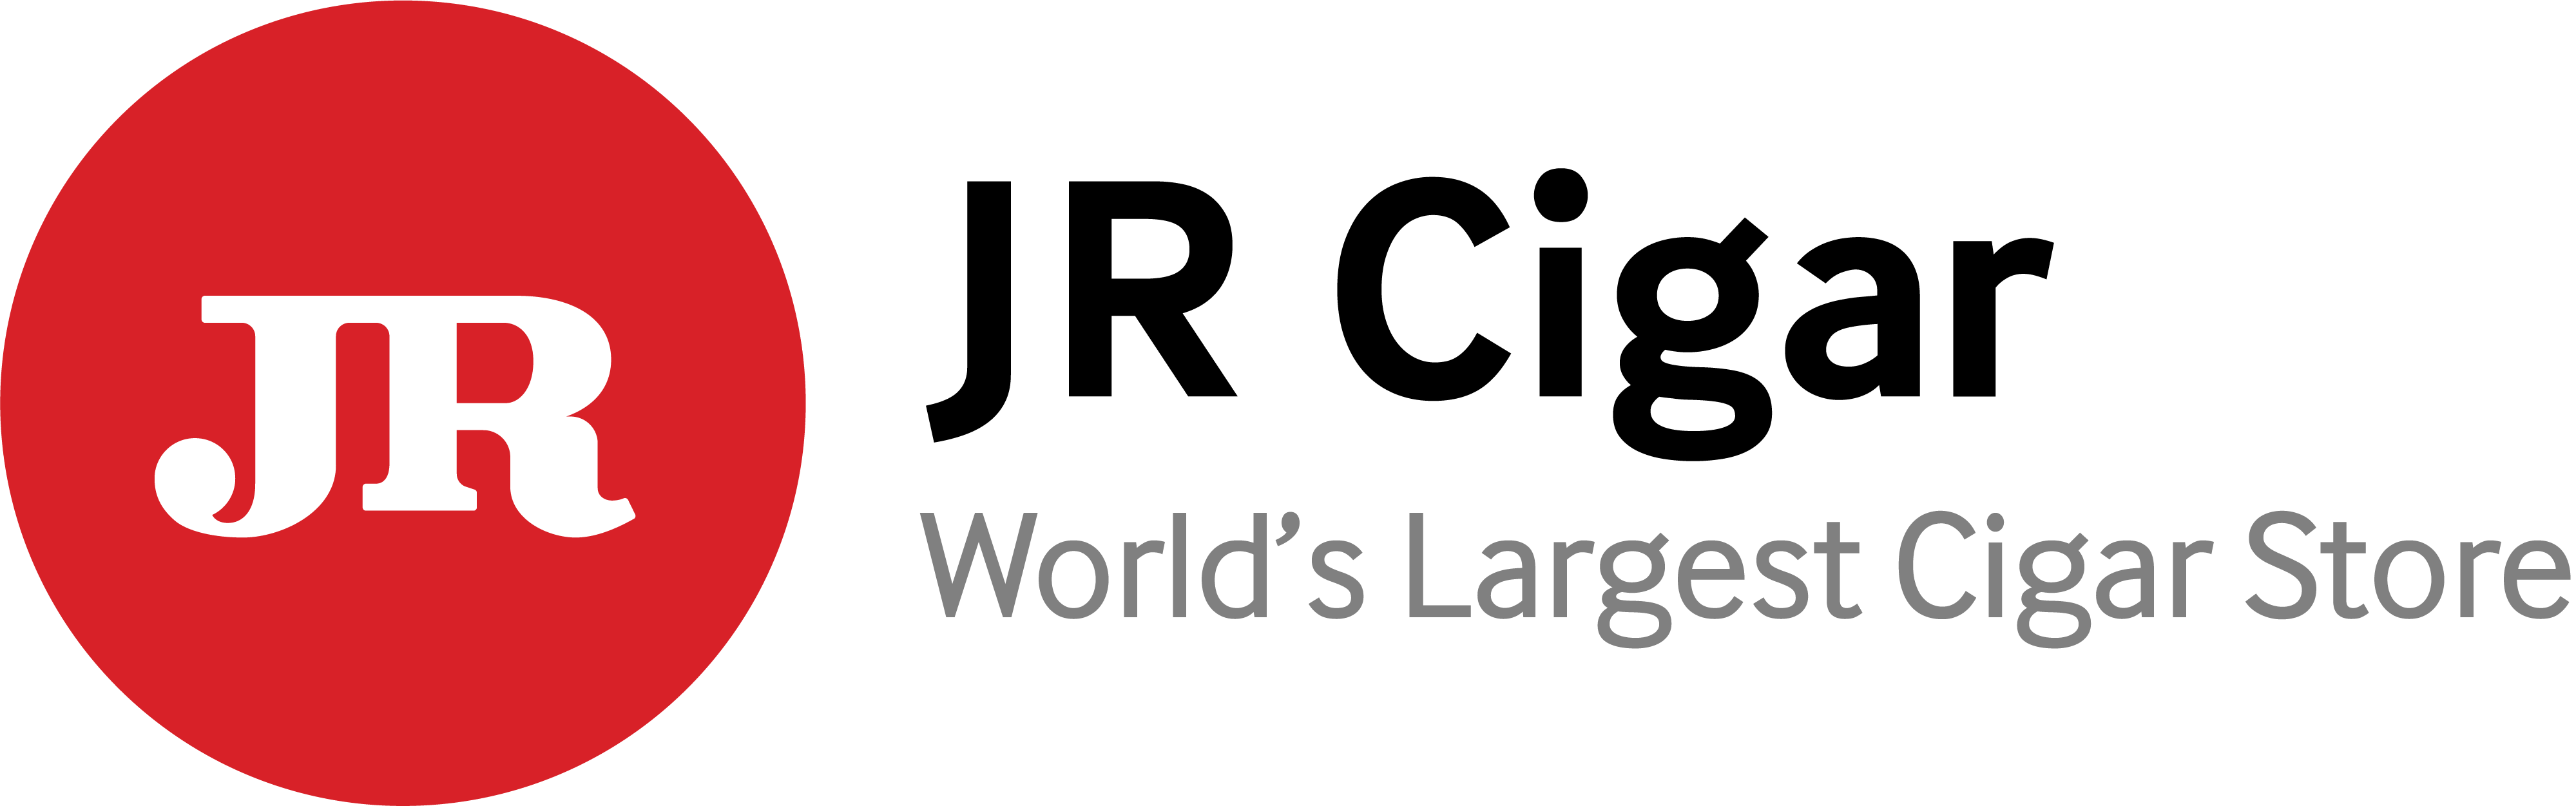 JR CIGARS - The World's Largest Online Cigar Store